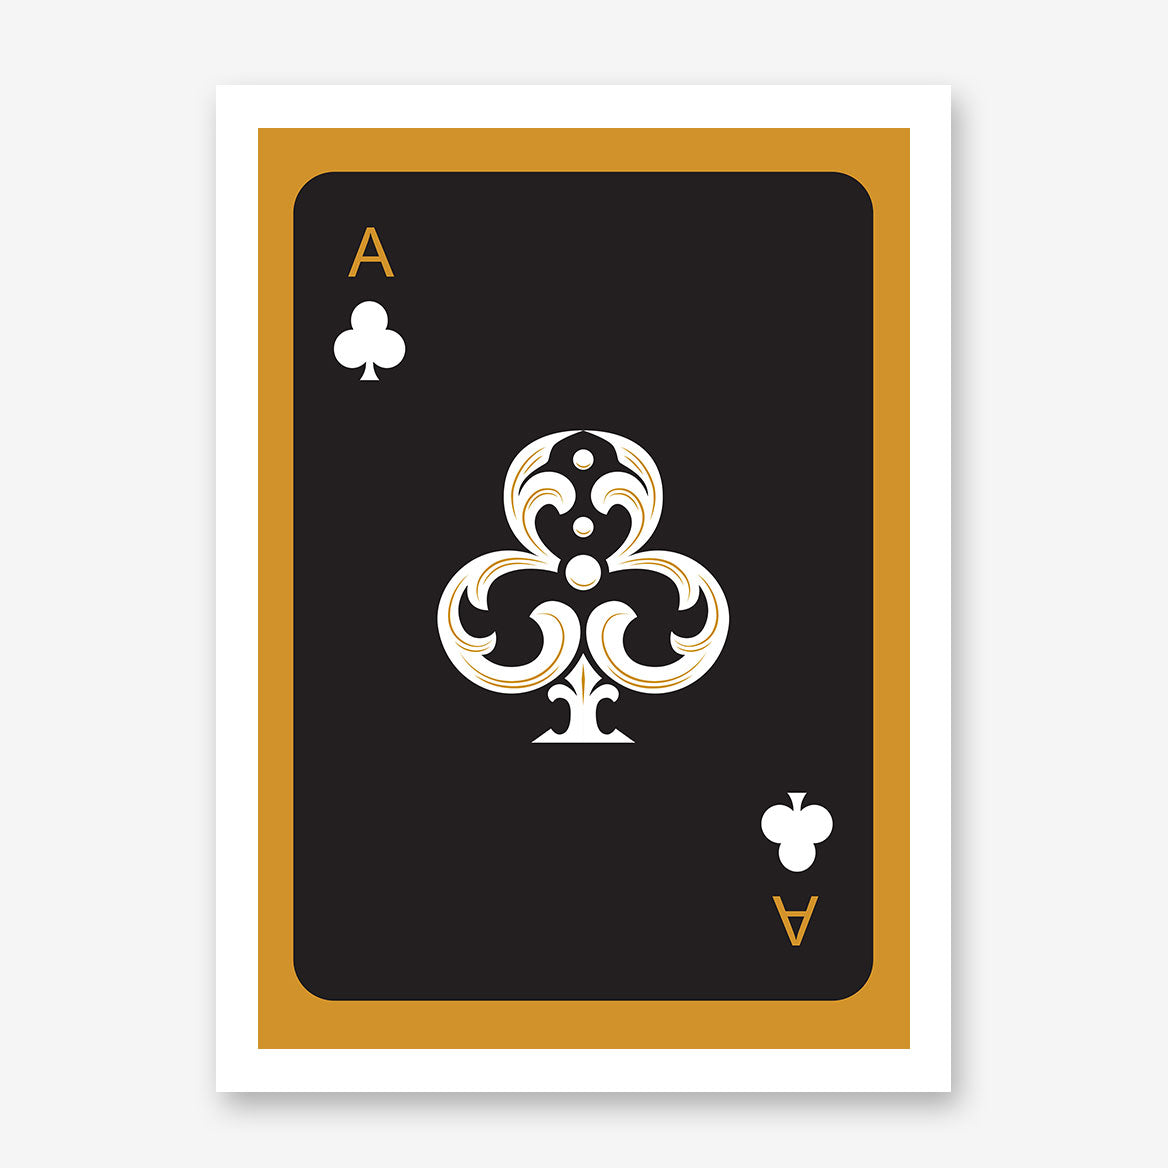 Poster print with black ace of clubs playing card, on gold background.